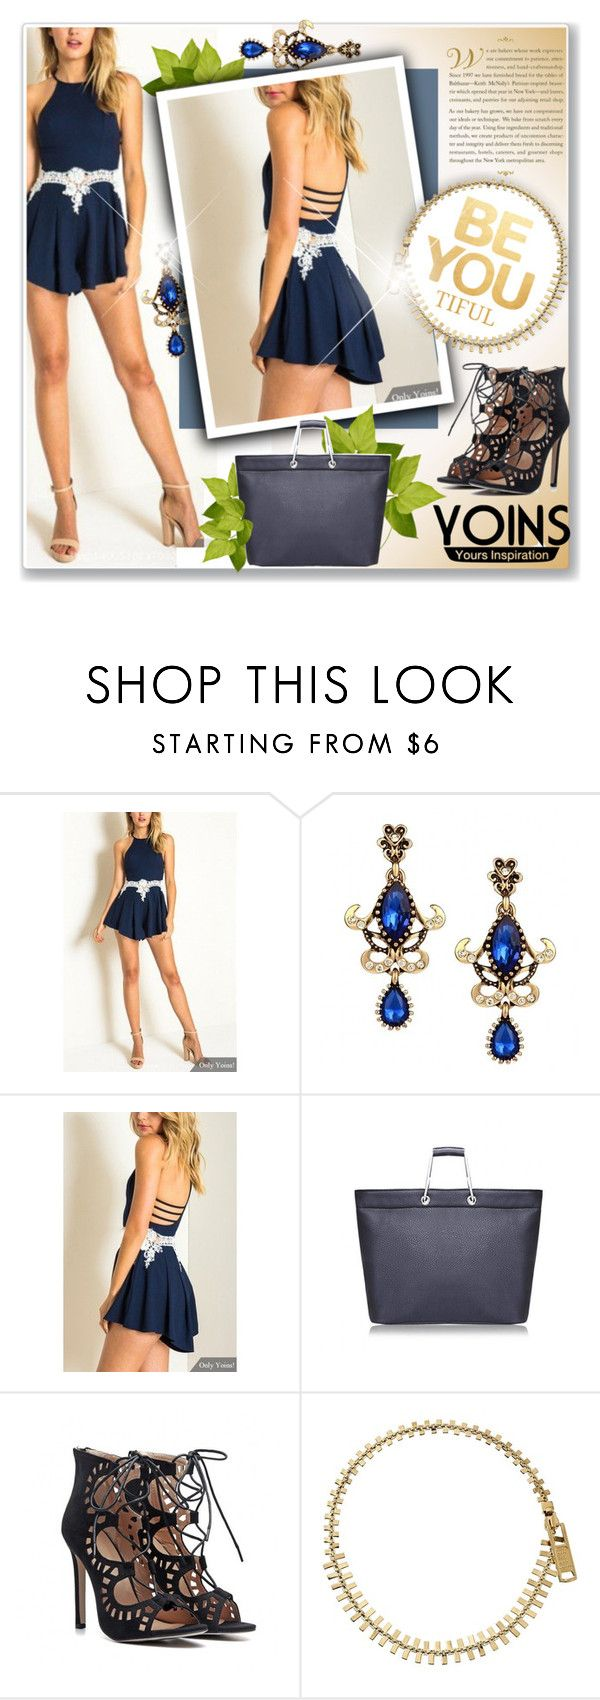 """Yoins contest-playsuit with Lace Detailes"" by oleahg ❤ liked on Polyvore featuring Marc by Marc Jacobs and yoins"